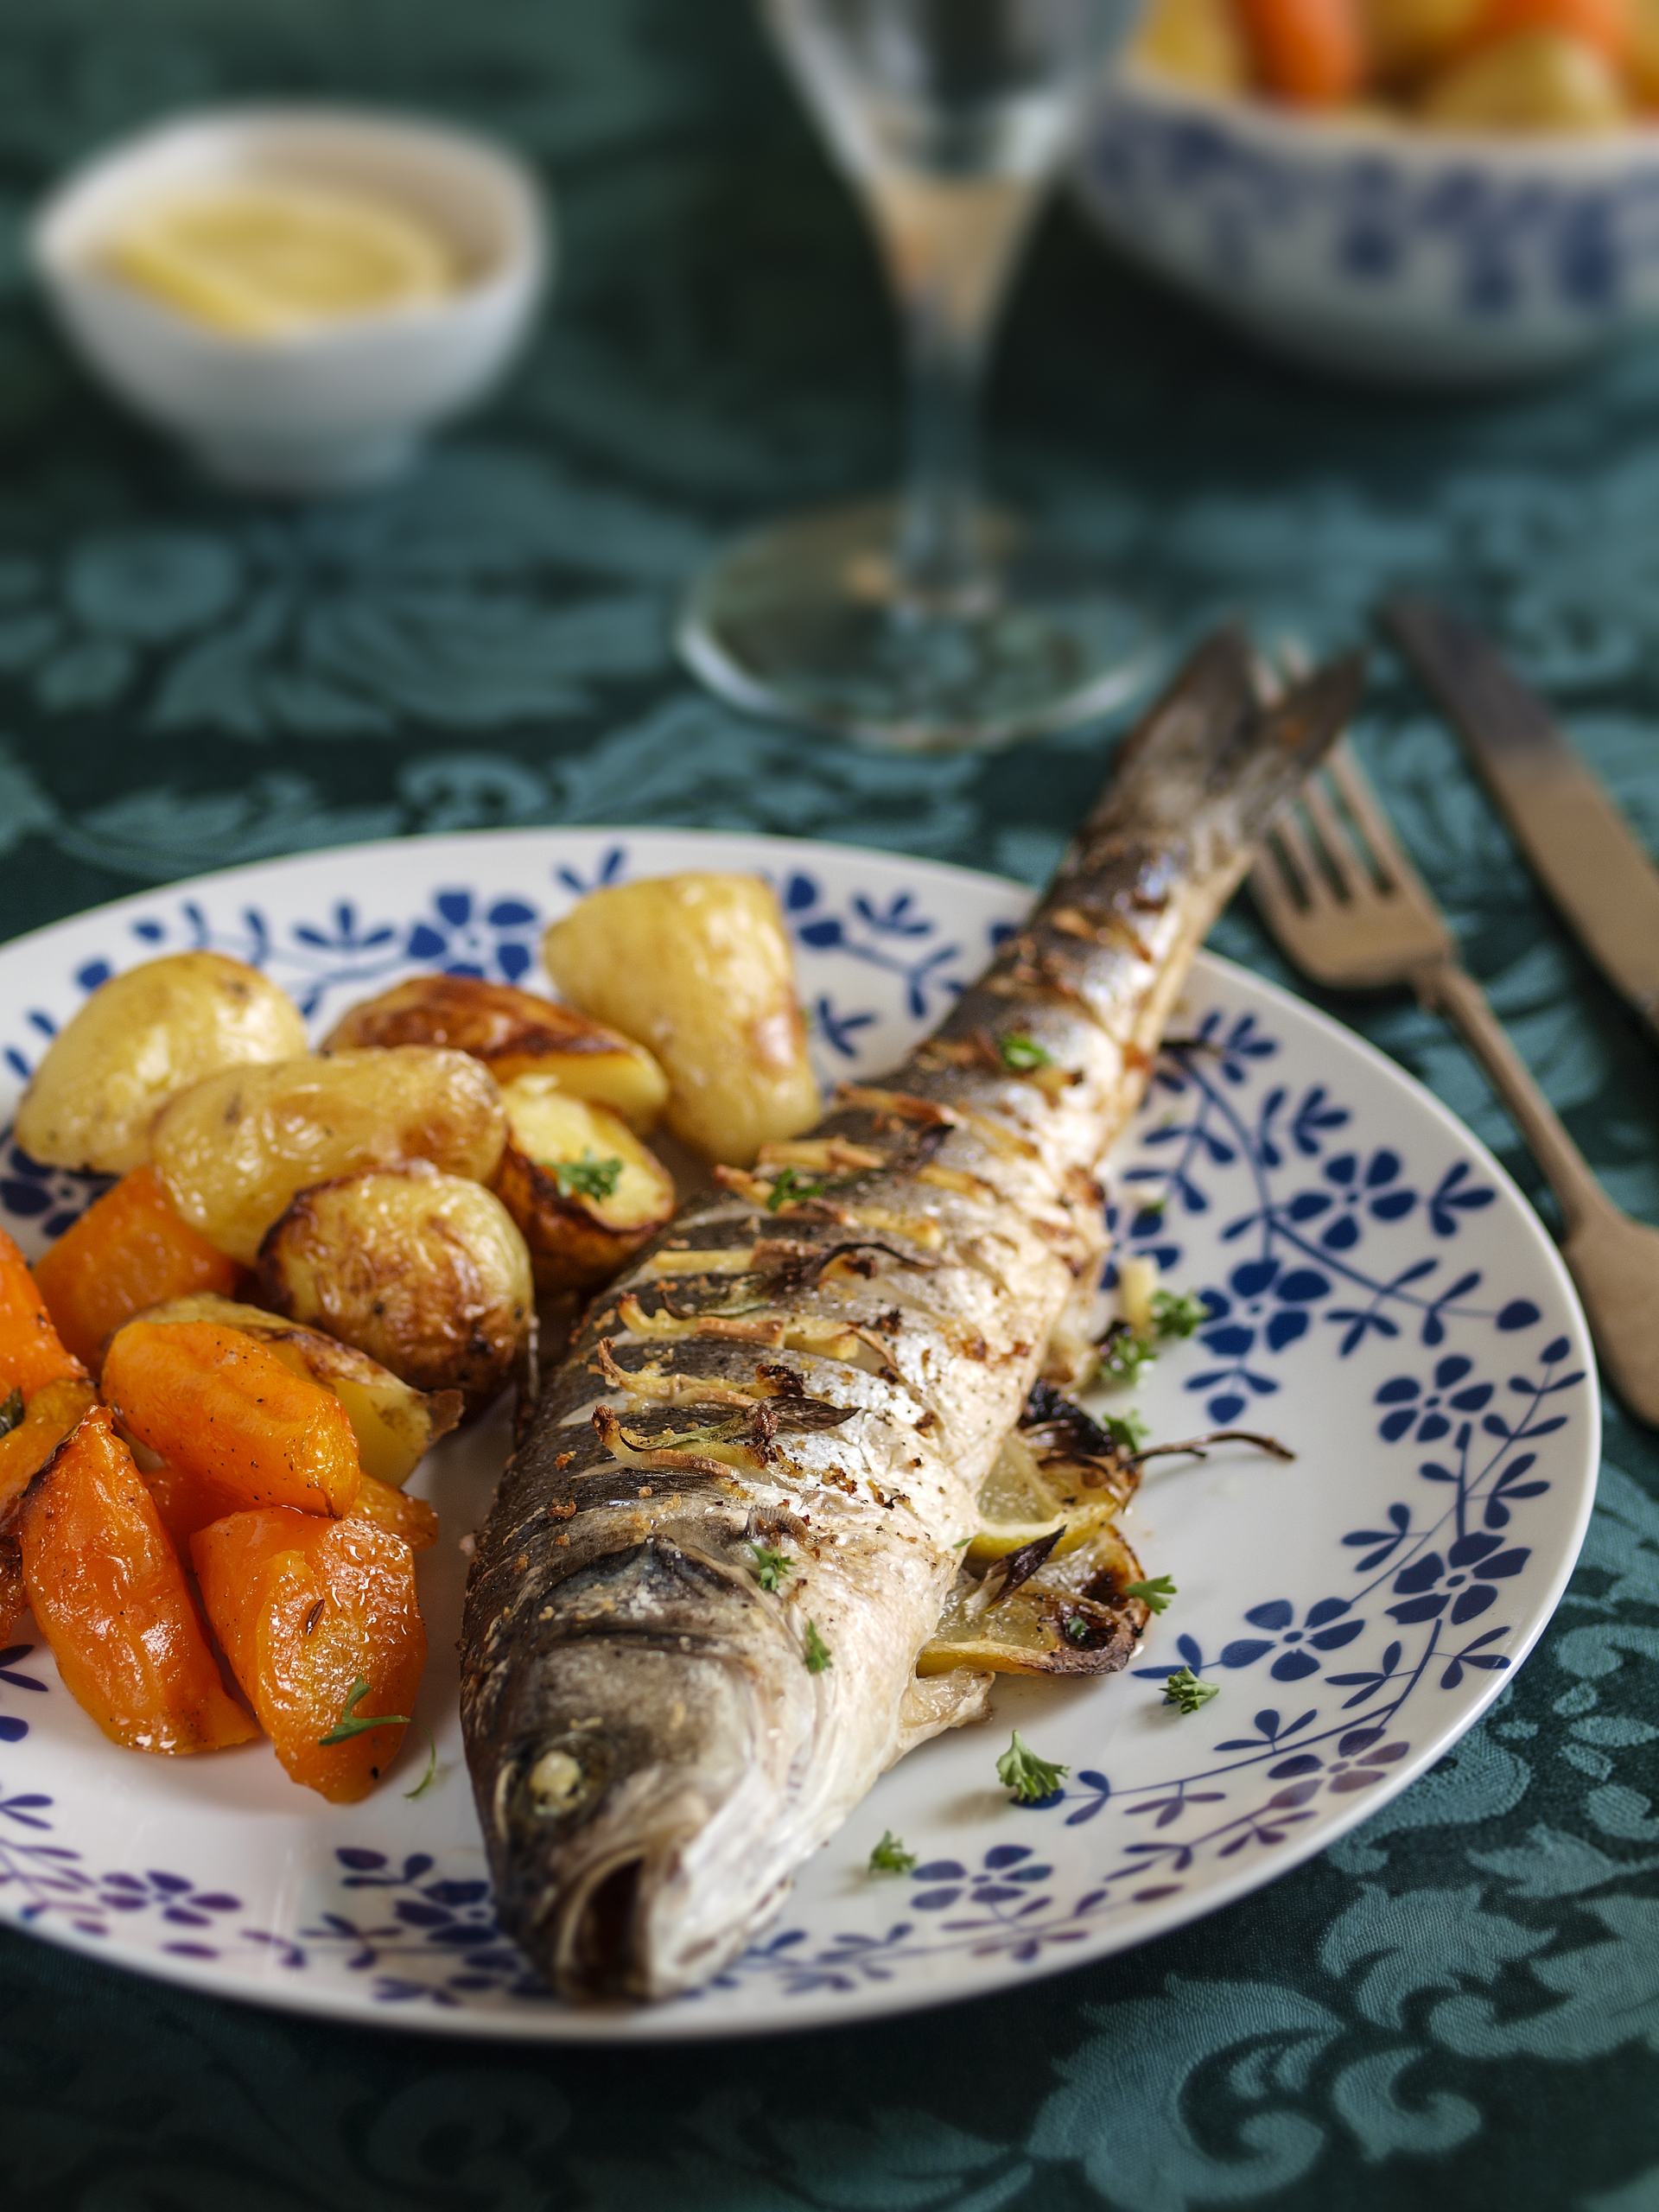 Oriental style baked whole sea bass,baked with ginger,garlic,spring onion,add a bit of soy sauce and coriander,service with roasted potatoes and carrots.